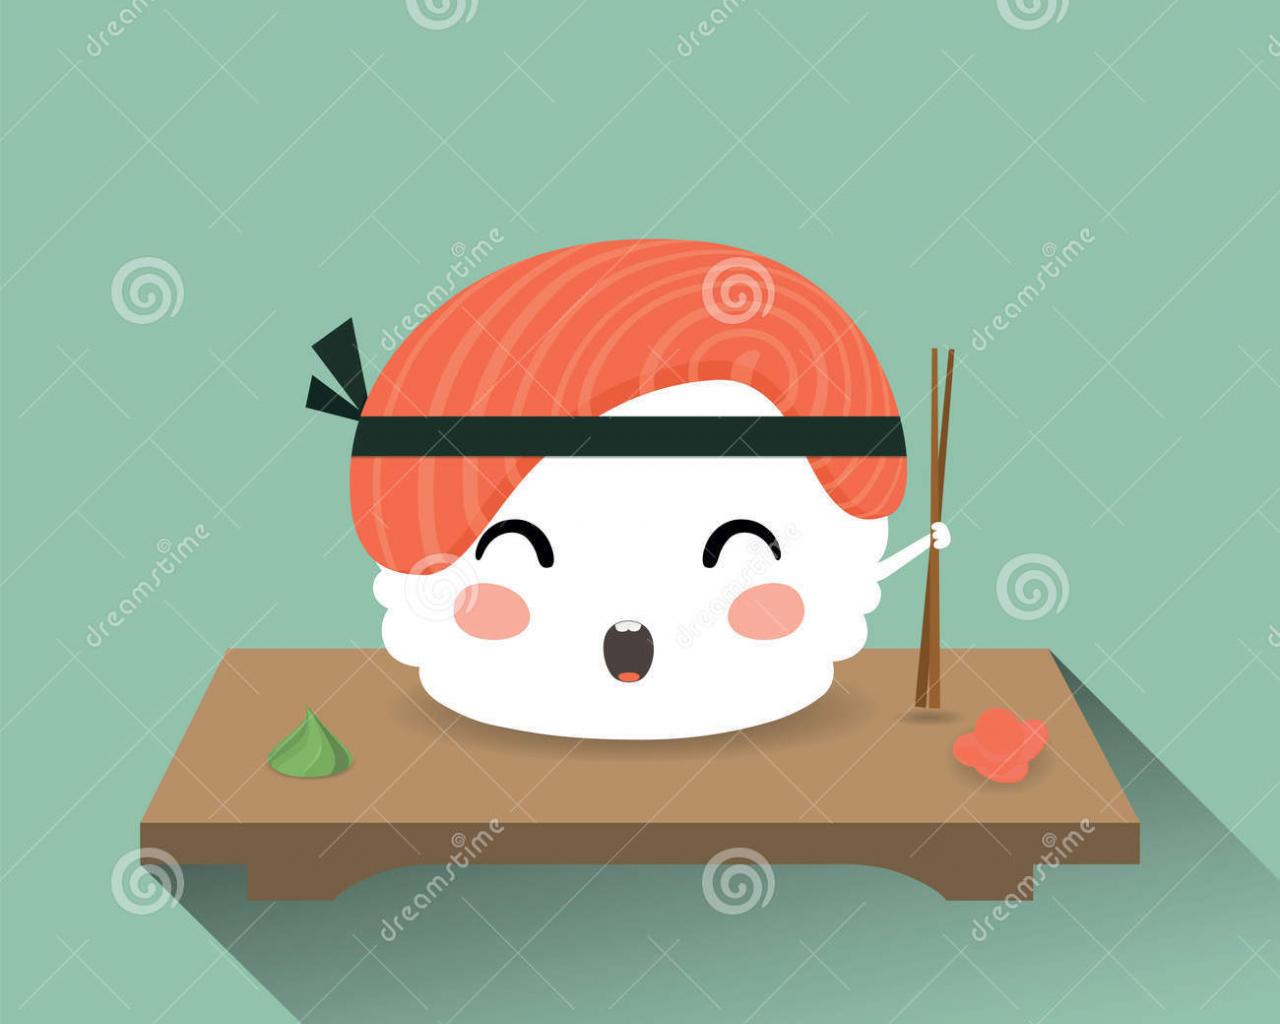 Free Download Cute Cartoon Sushi Stock Photos By